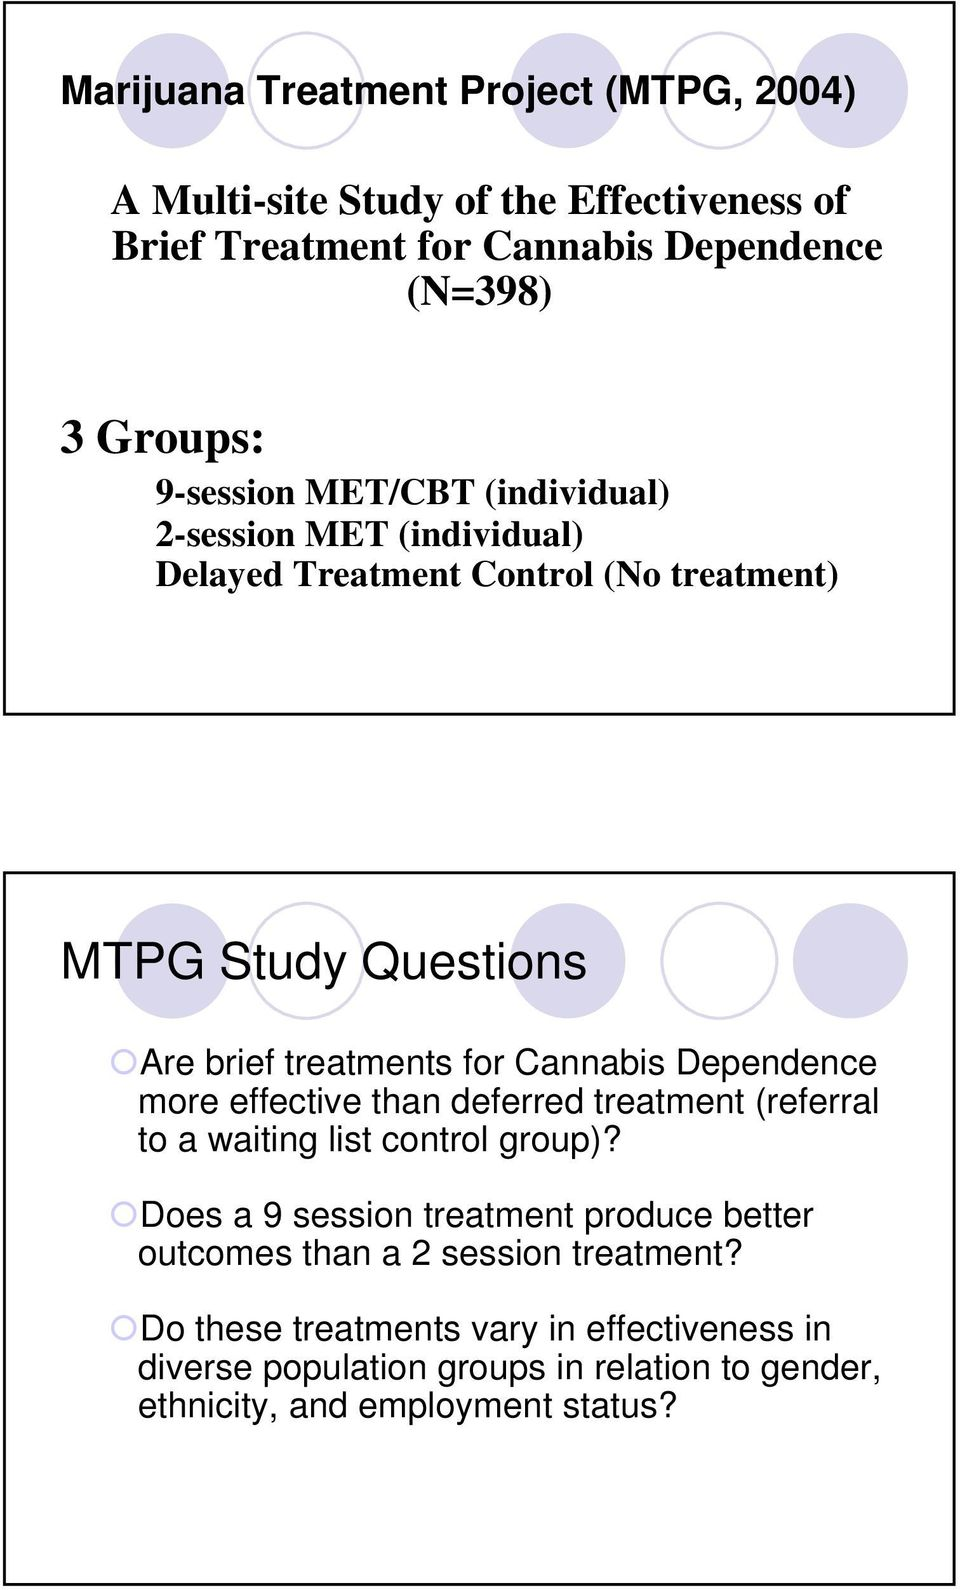 Cannabis Dependence more effective than deferred treatment (referral to a waiting list control group)?